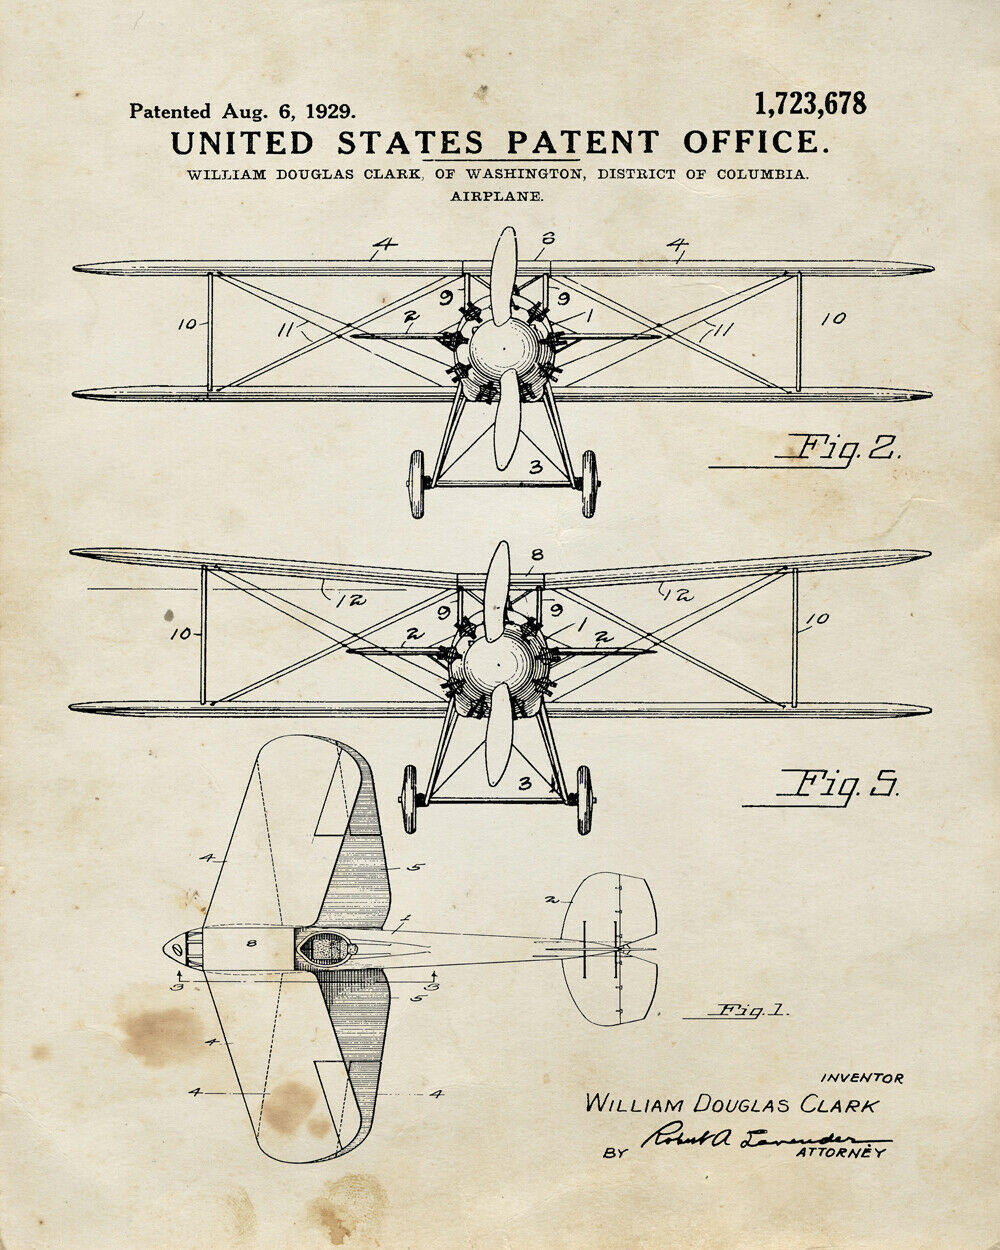 8723.Decorative Poster.Home room interior design wall.Invention patent.Airplane